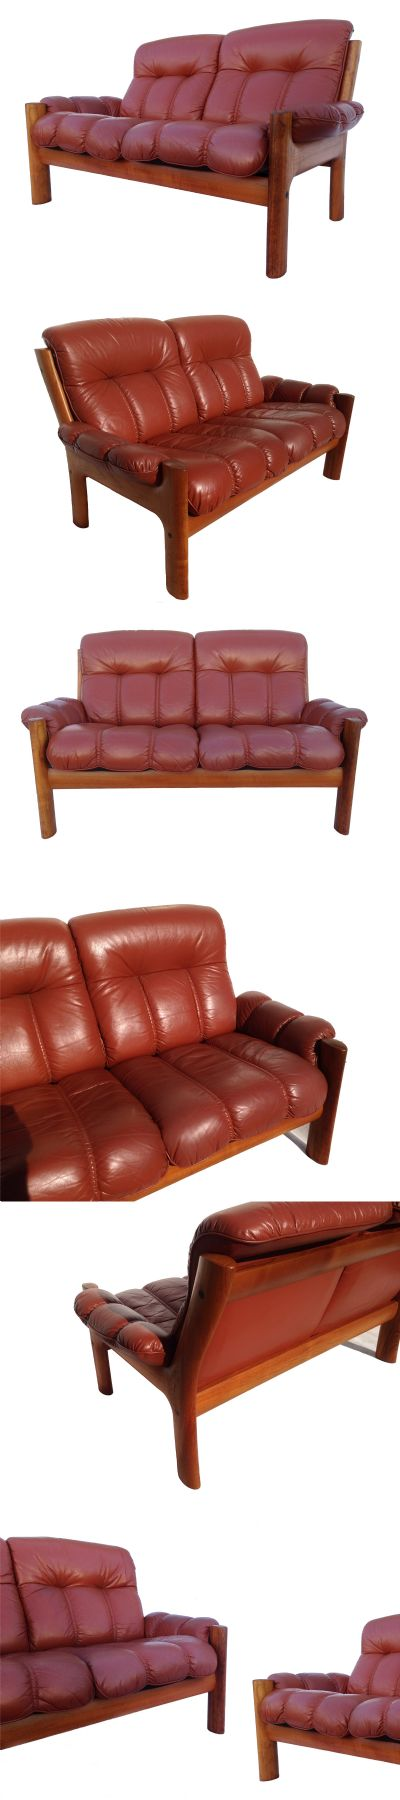 A  teak and leather 2 seater sofa by Glostrup mobelfabrik of Denmark, c1970s. One of a pair available.